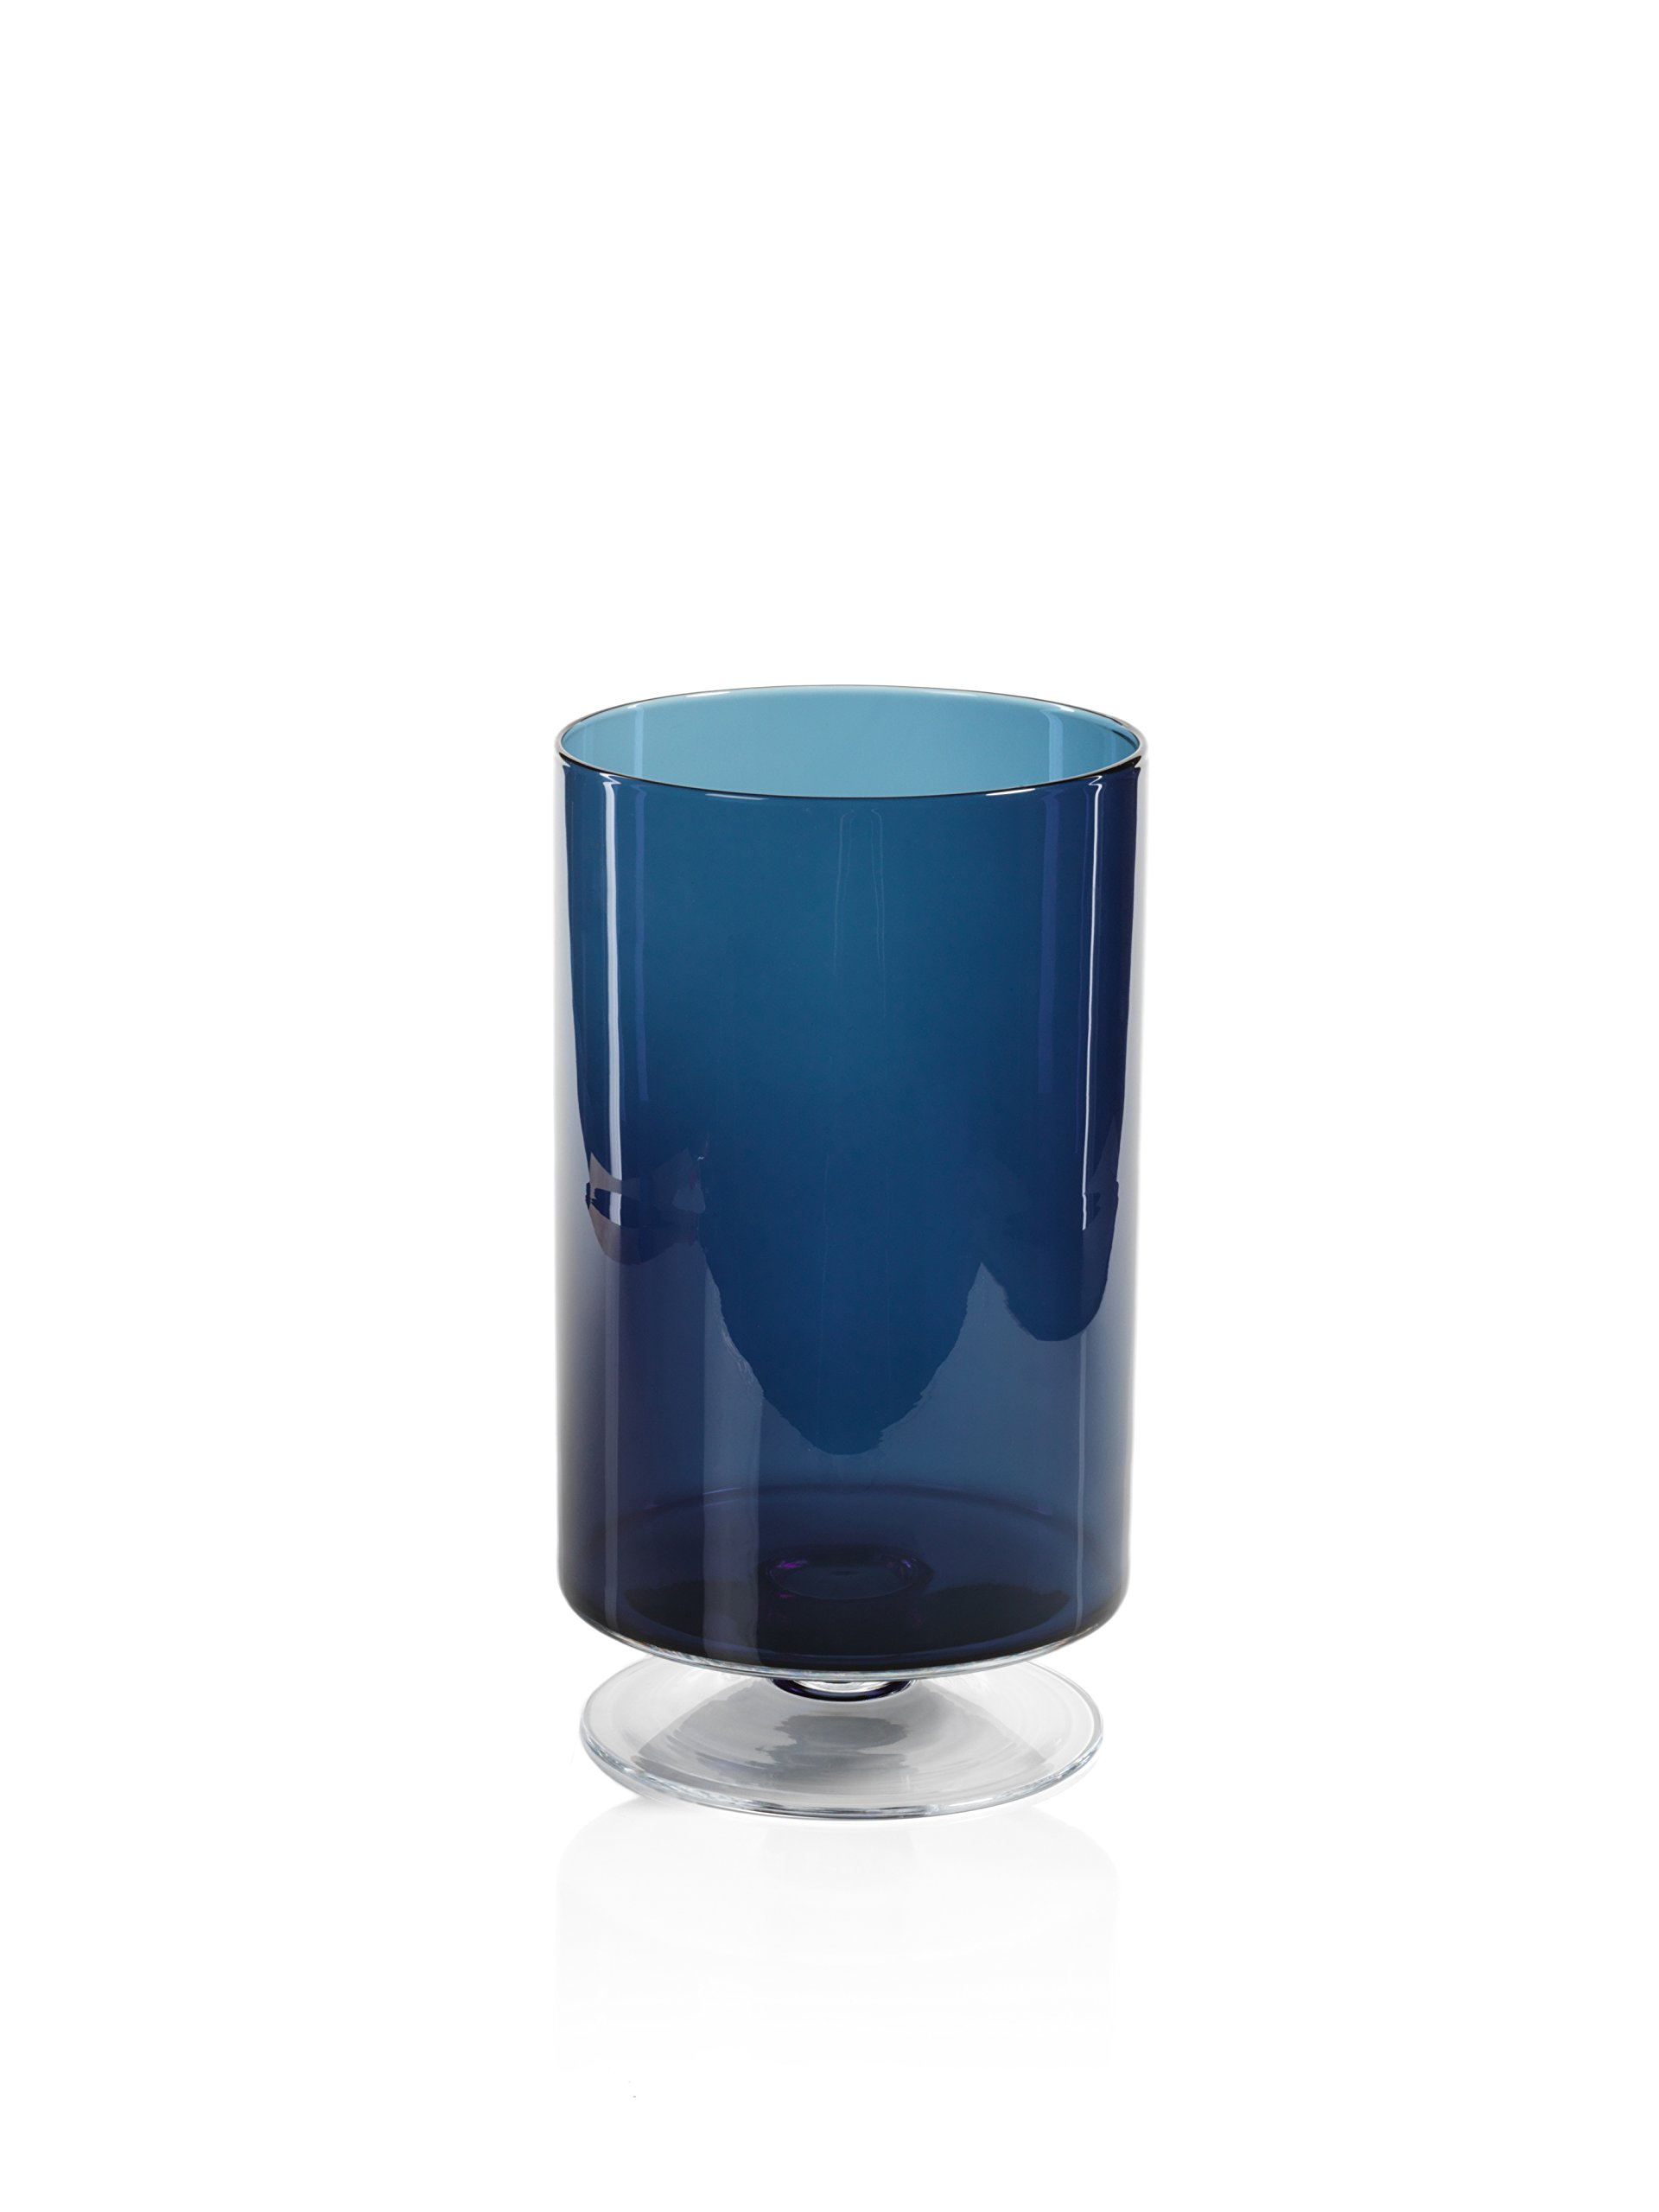 Zodax'' Algarve 13.5'' Tall Footed Base, Midnight Blue Hurricane